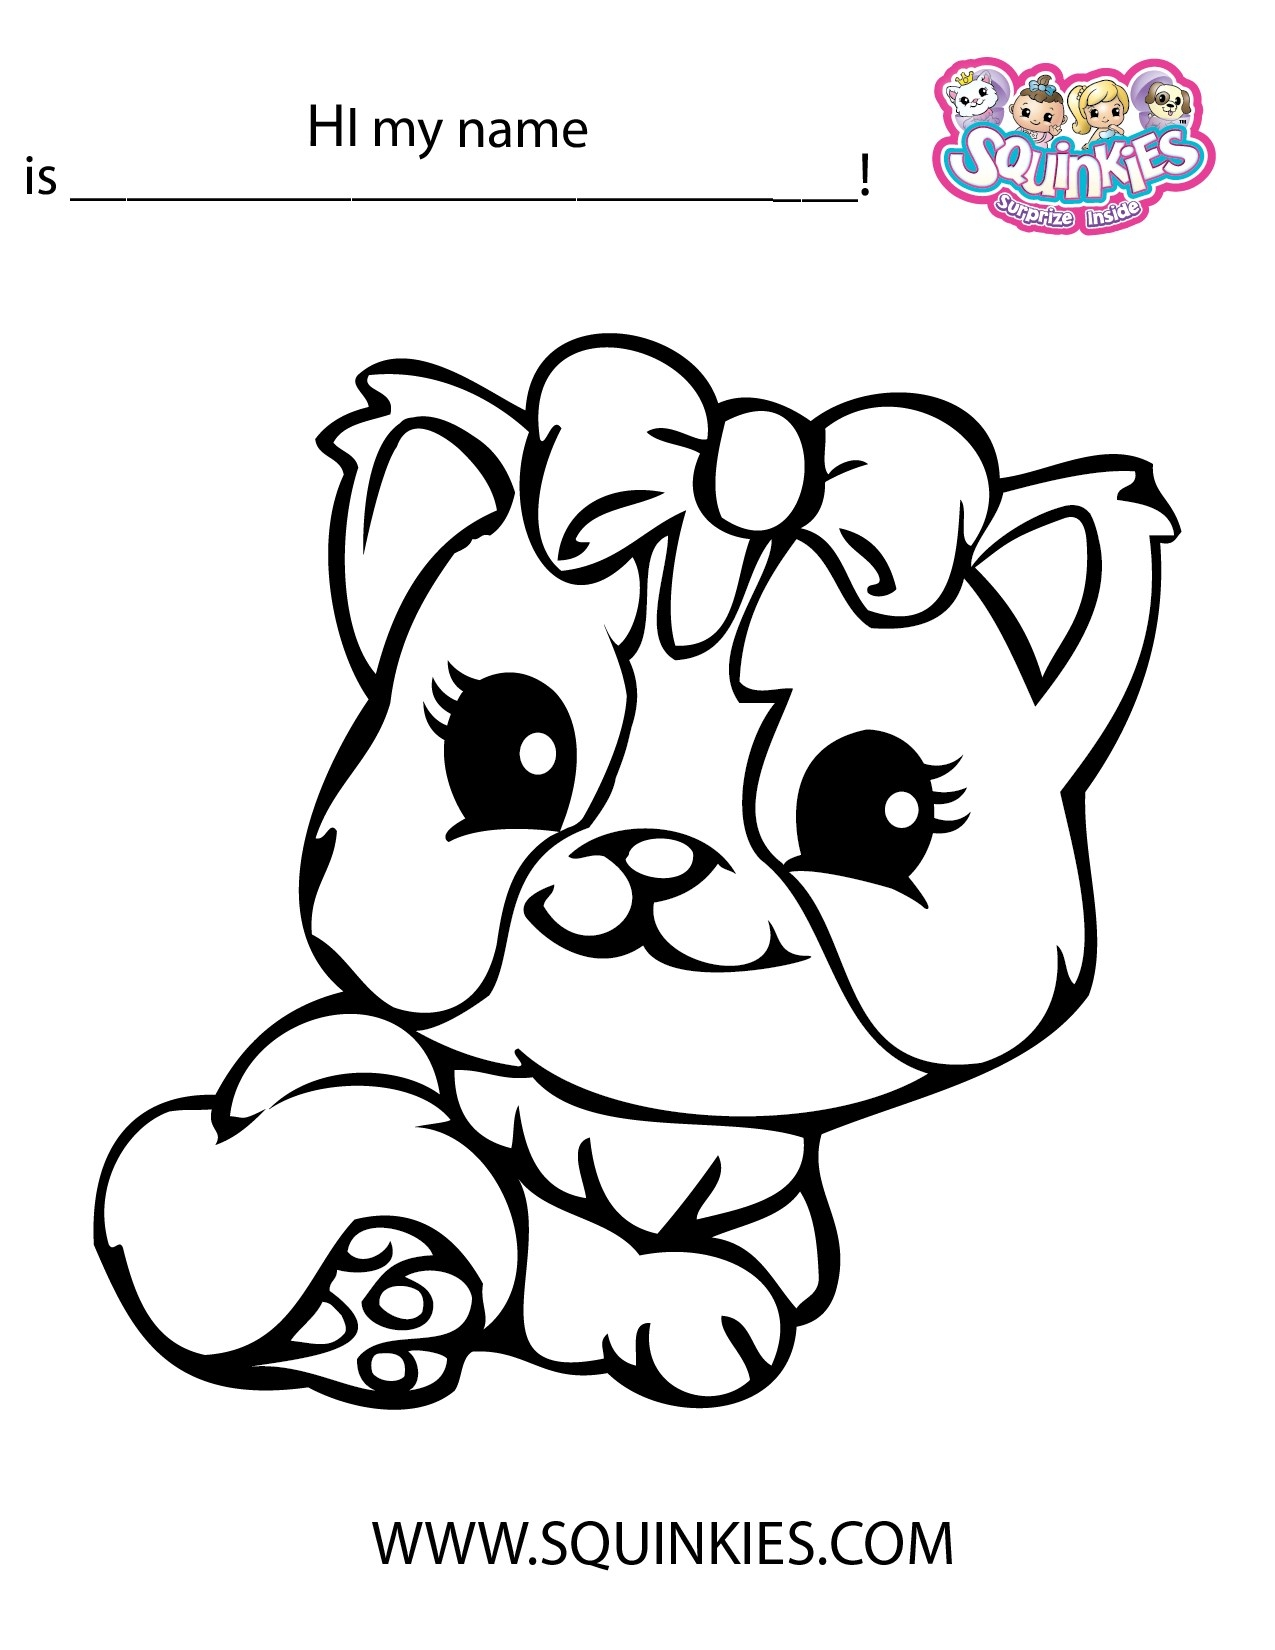 Route 66 Coloring Pages